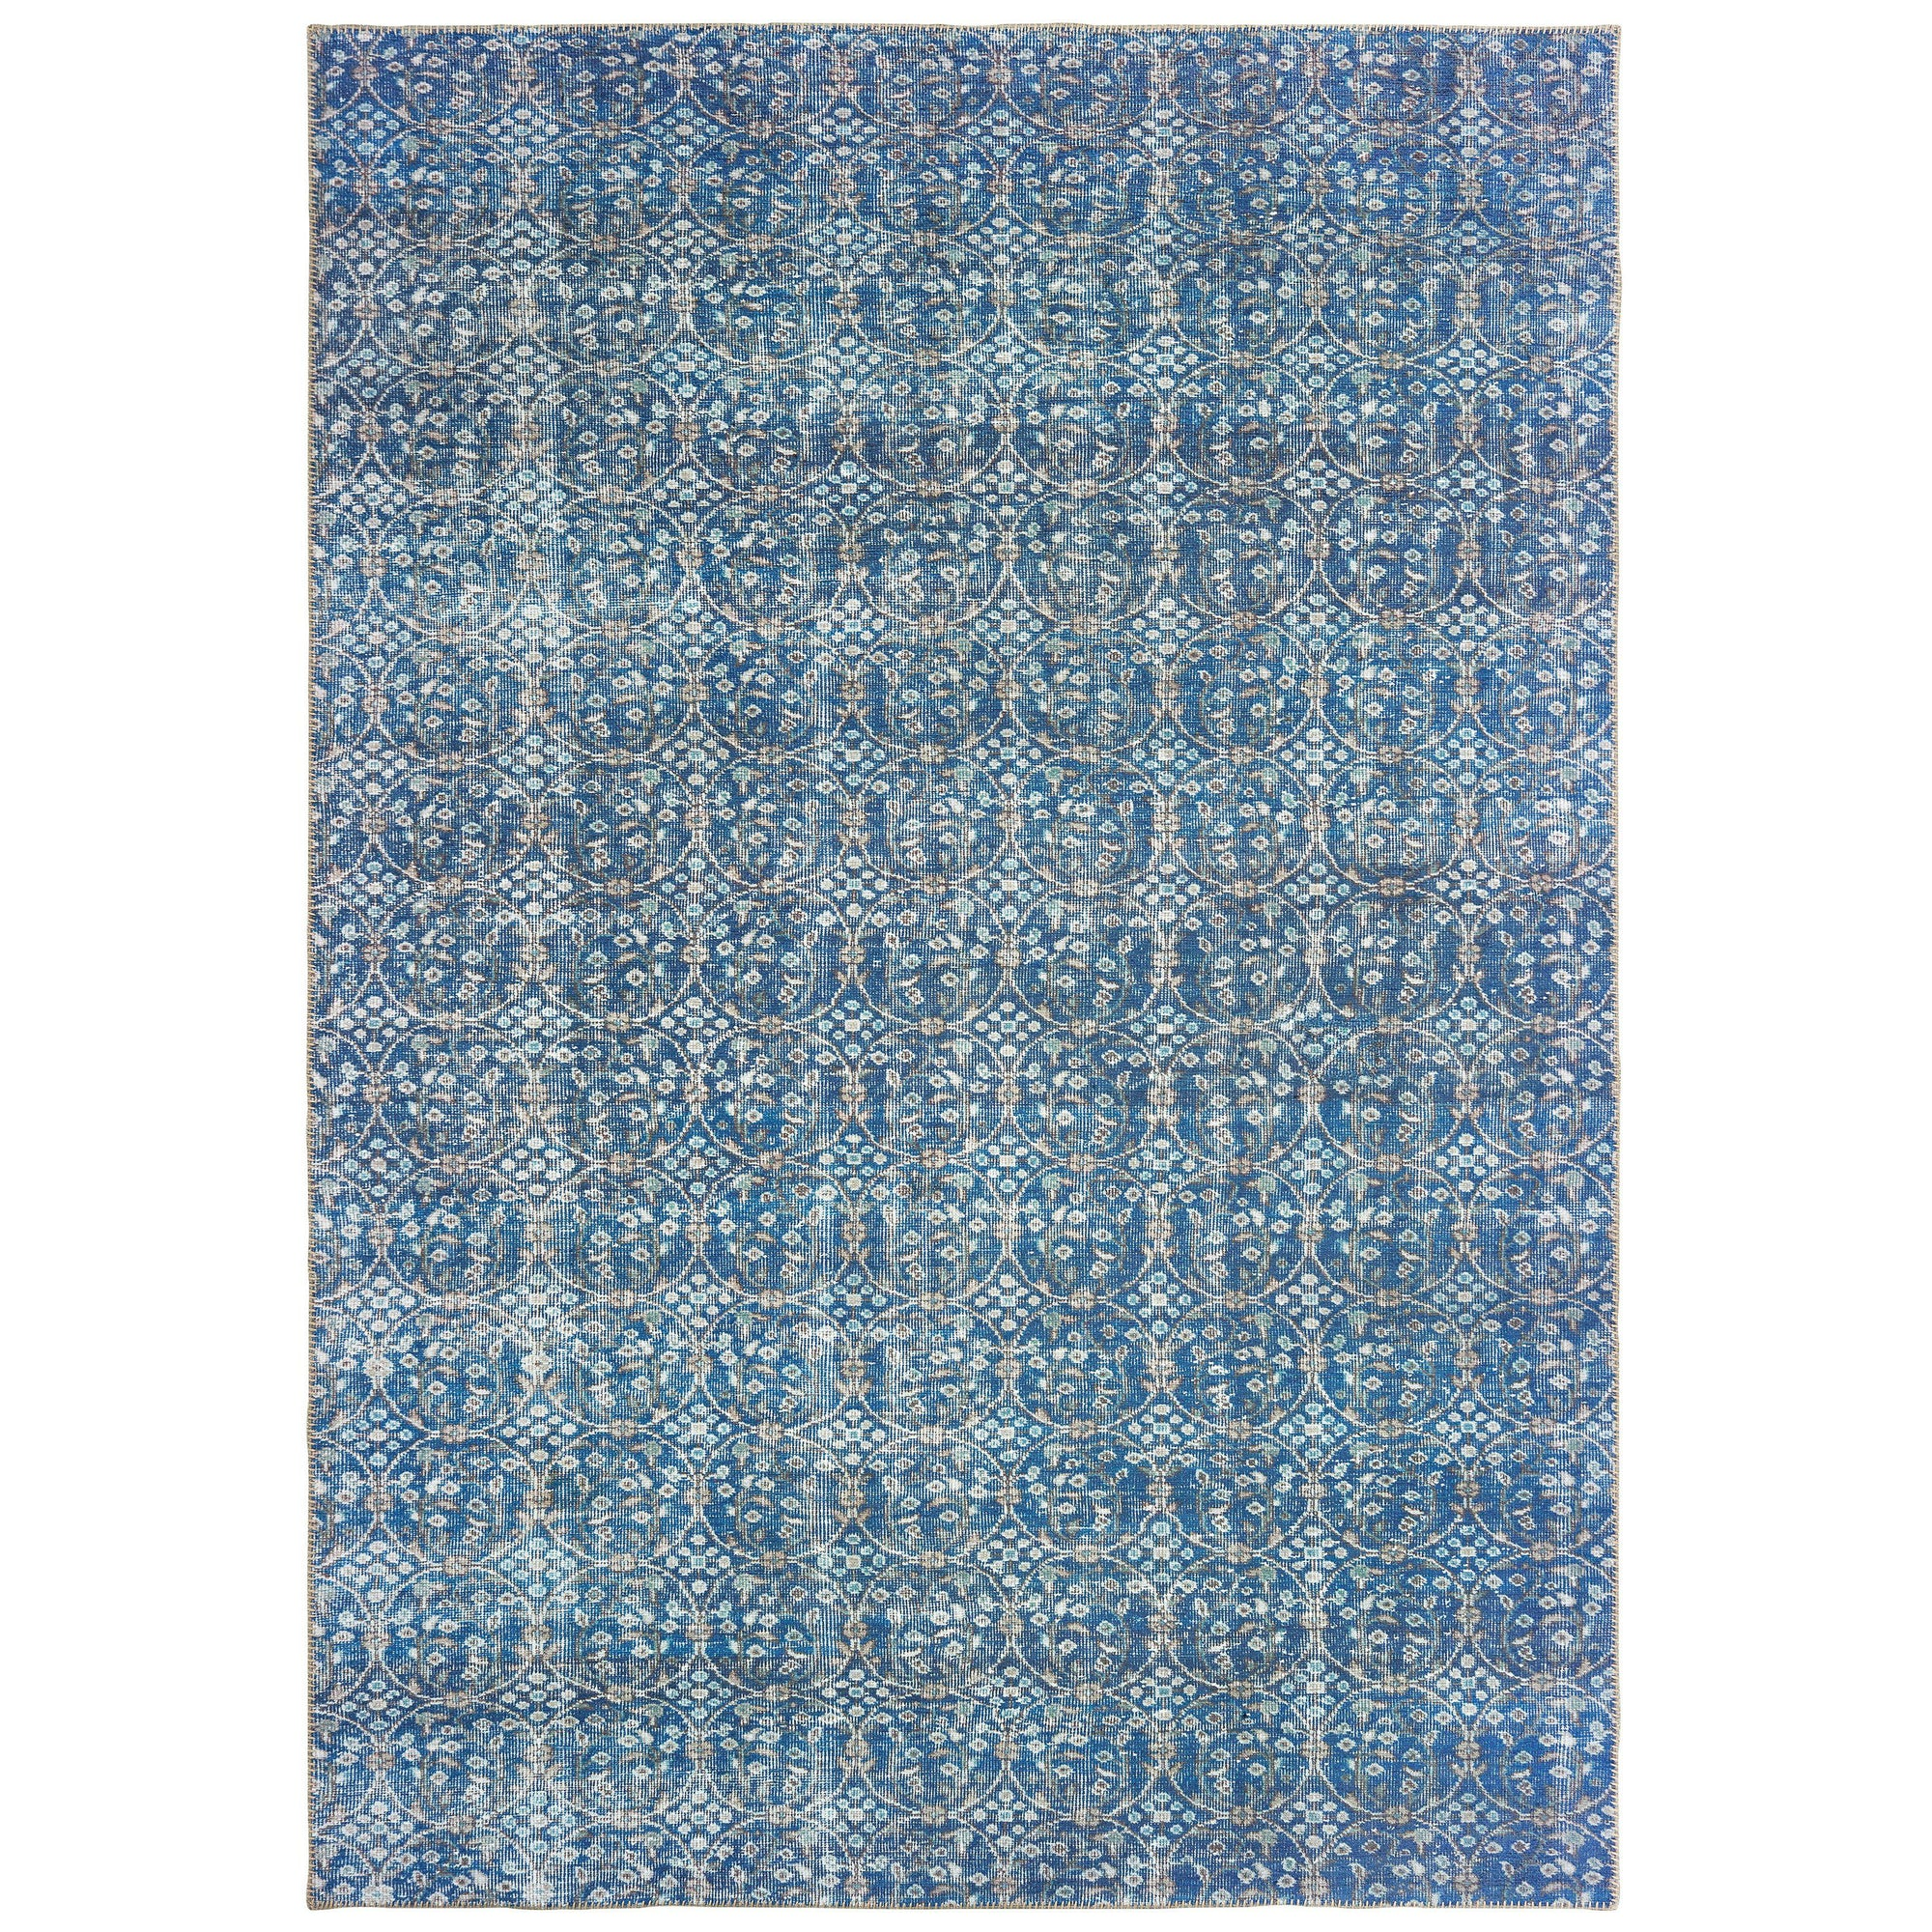 "The Rug Truck Shayna 85815 Blue Area Rug (8' 3"" X 11' 6"")"